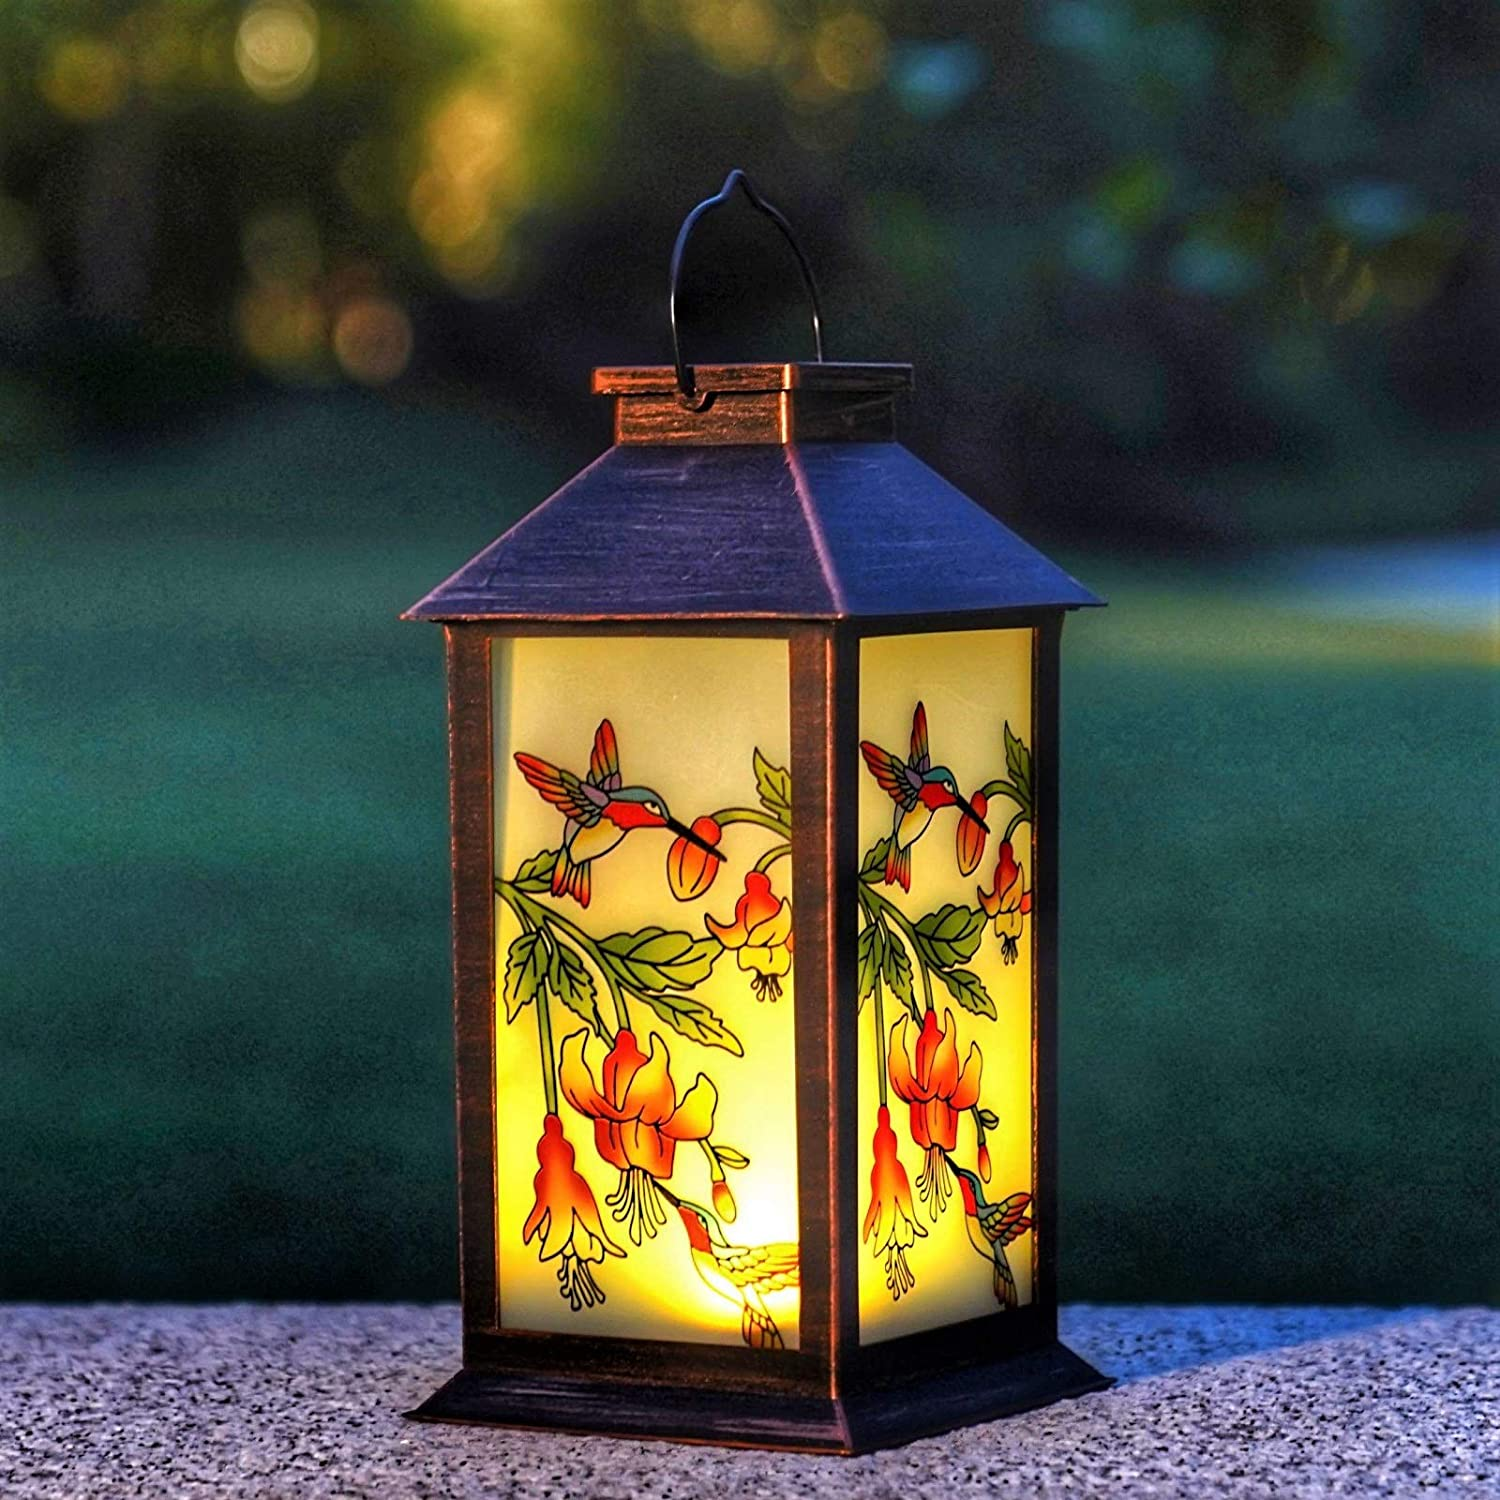 Solar Lanterns Outdoor Hanging Solar Lights Decorative for Garden Patio Porch and Tabletop Decorations with Hummingbird Pattern.